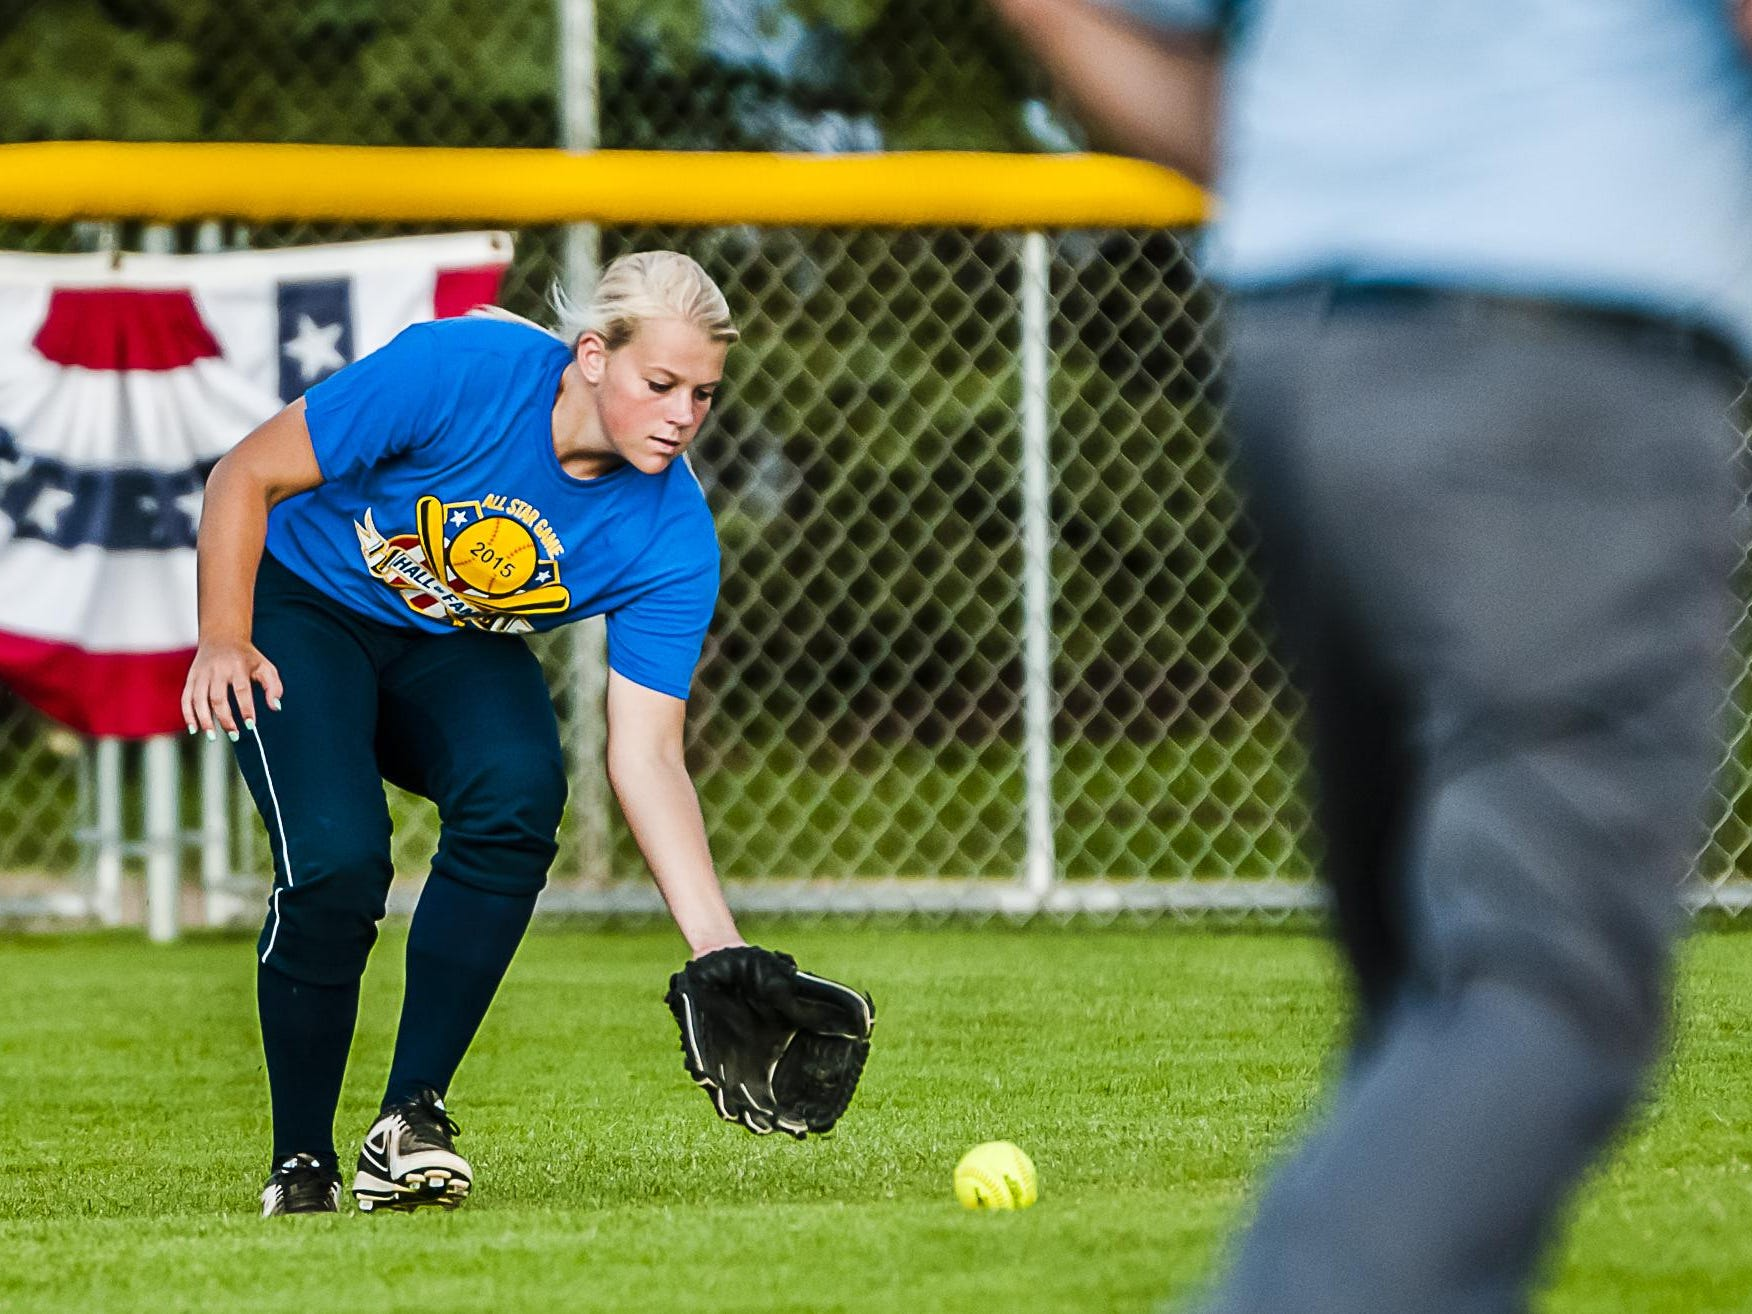 Lauren Hazel of the West team charges an East team drive to right field during their All-Star game Friday July 10, 2015 at Ranney Park in Lansing. KEVIN W. FOWLER PHOTO